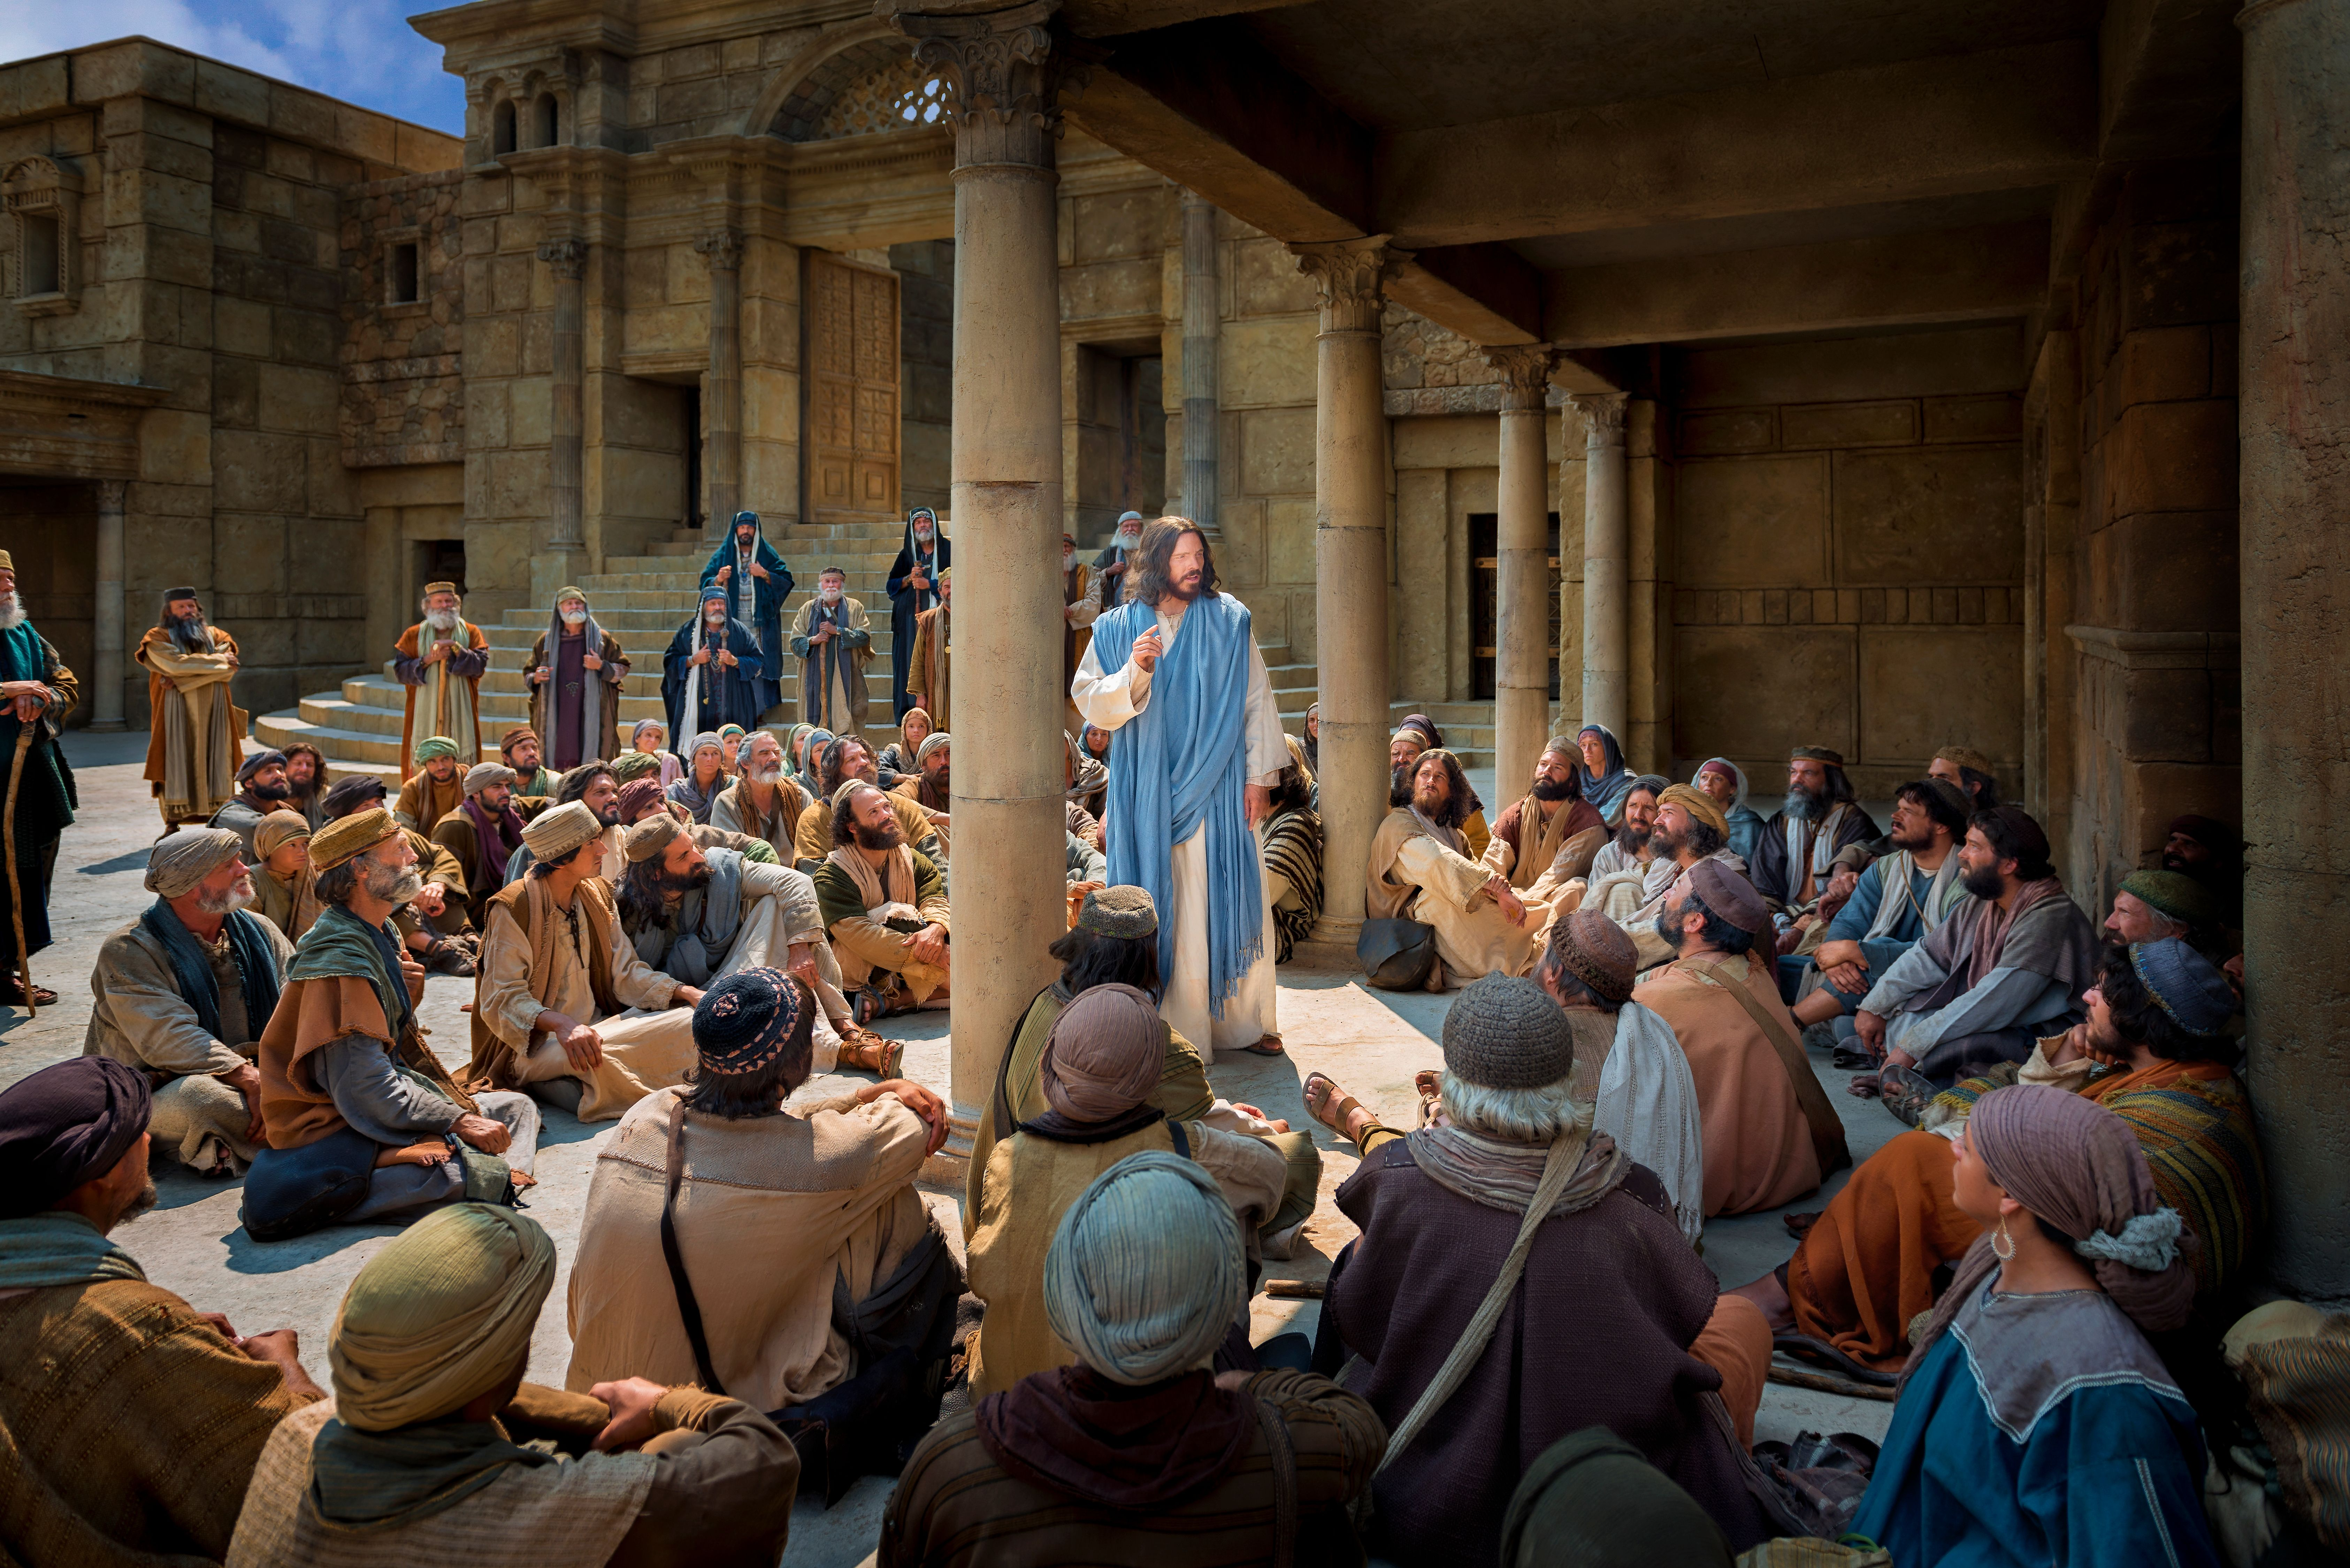 Christ teaches a crowd of people.